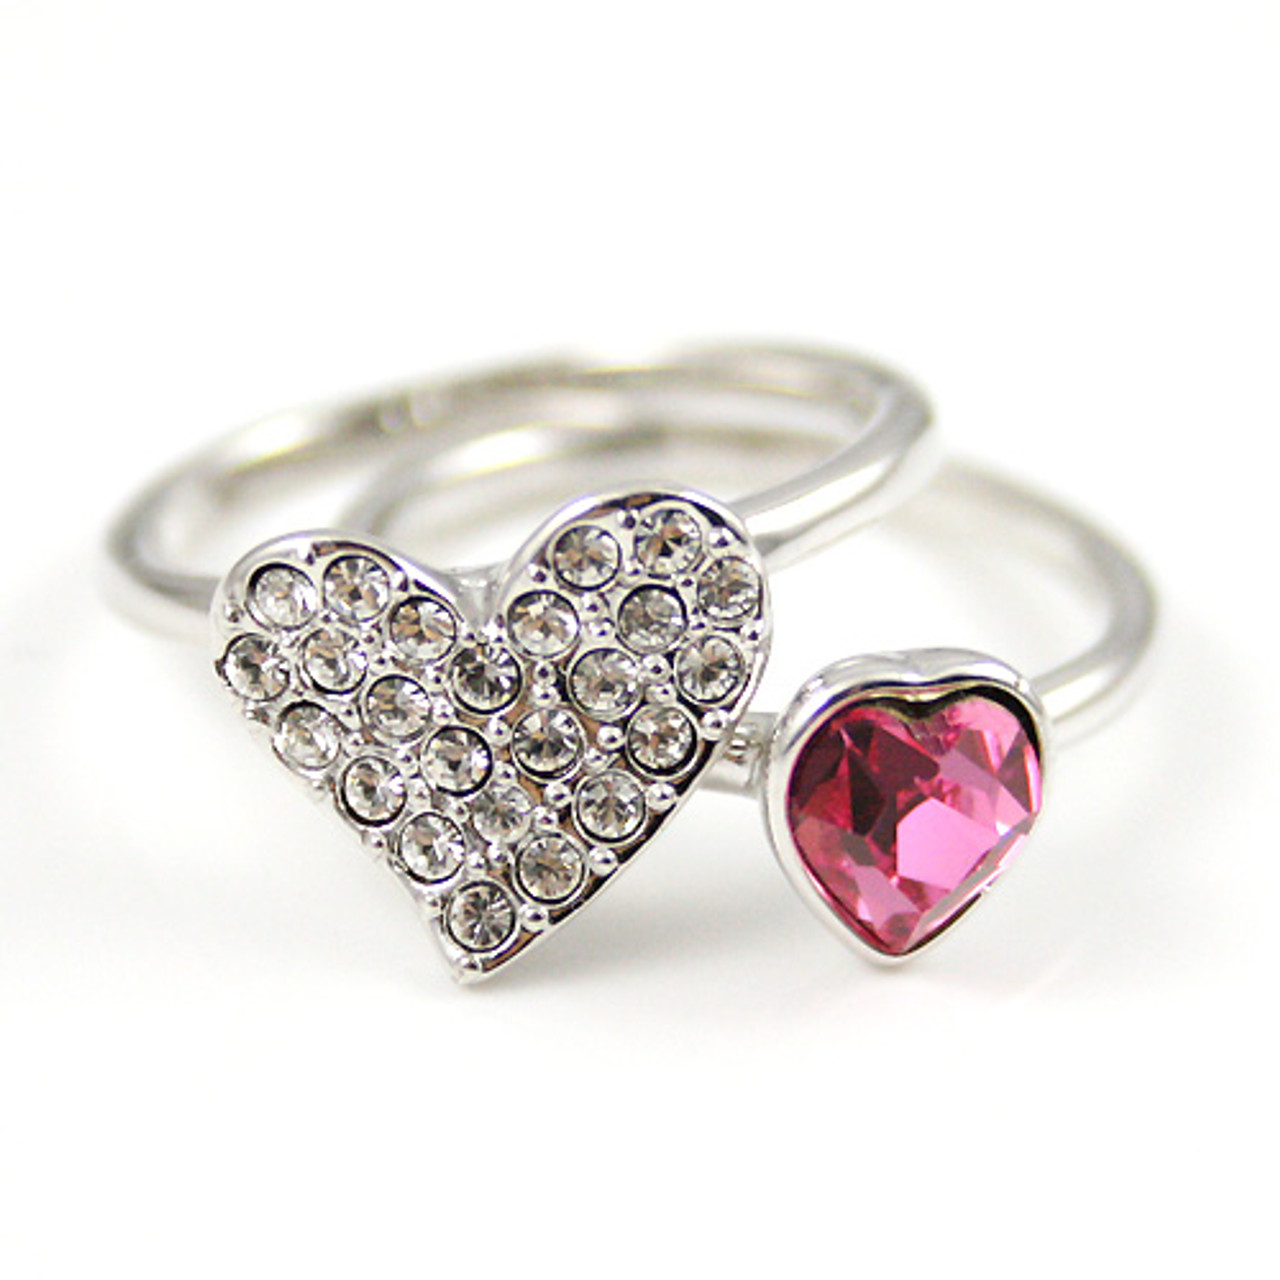 8bcabc7a89b25 Rose Pink Heart Stacking Rings Made with Swarovski Elements Diamante